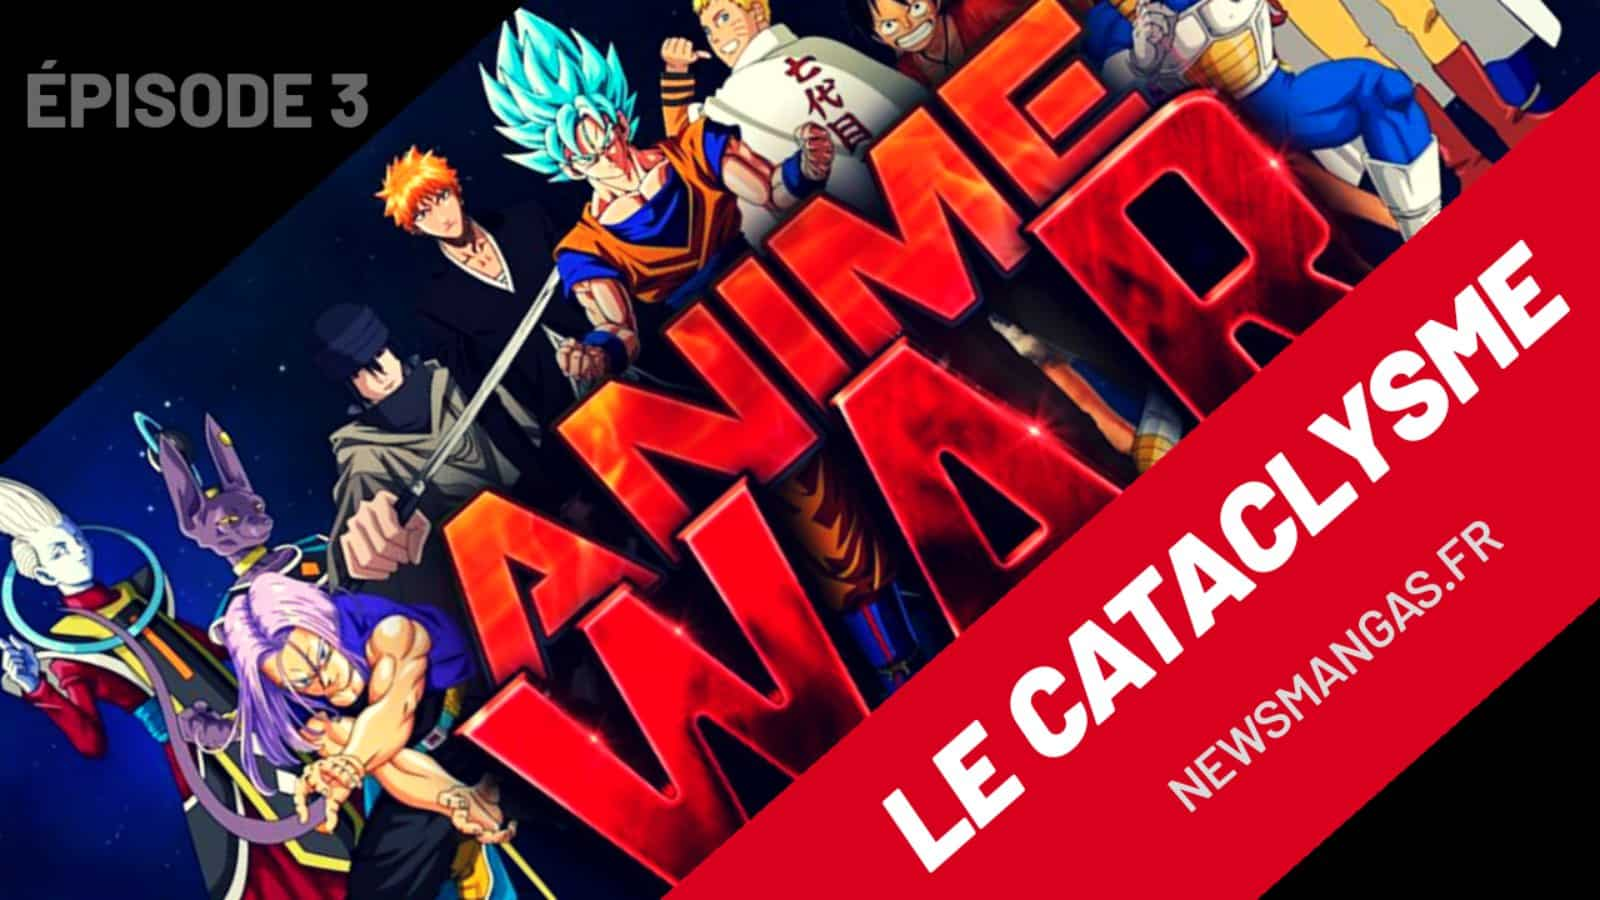 Anime War épisode 3 Vostfr - Le Cataclysme 6